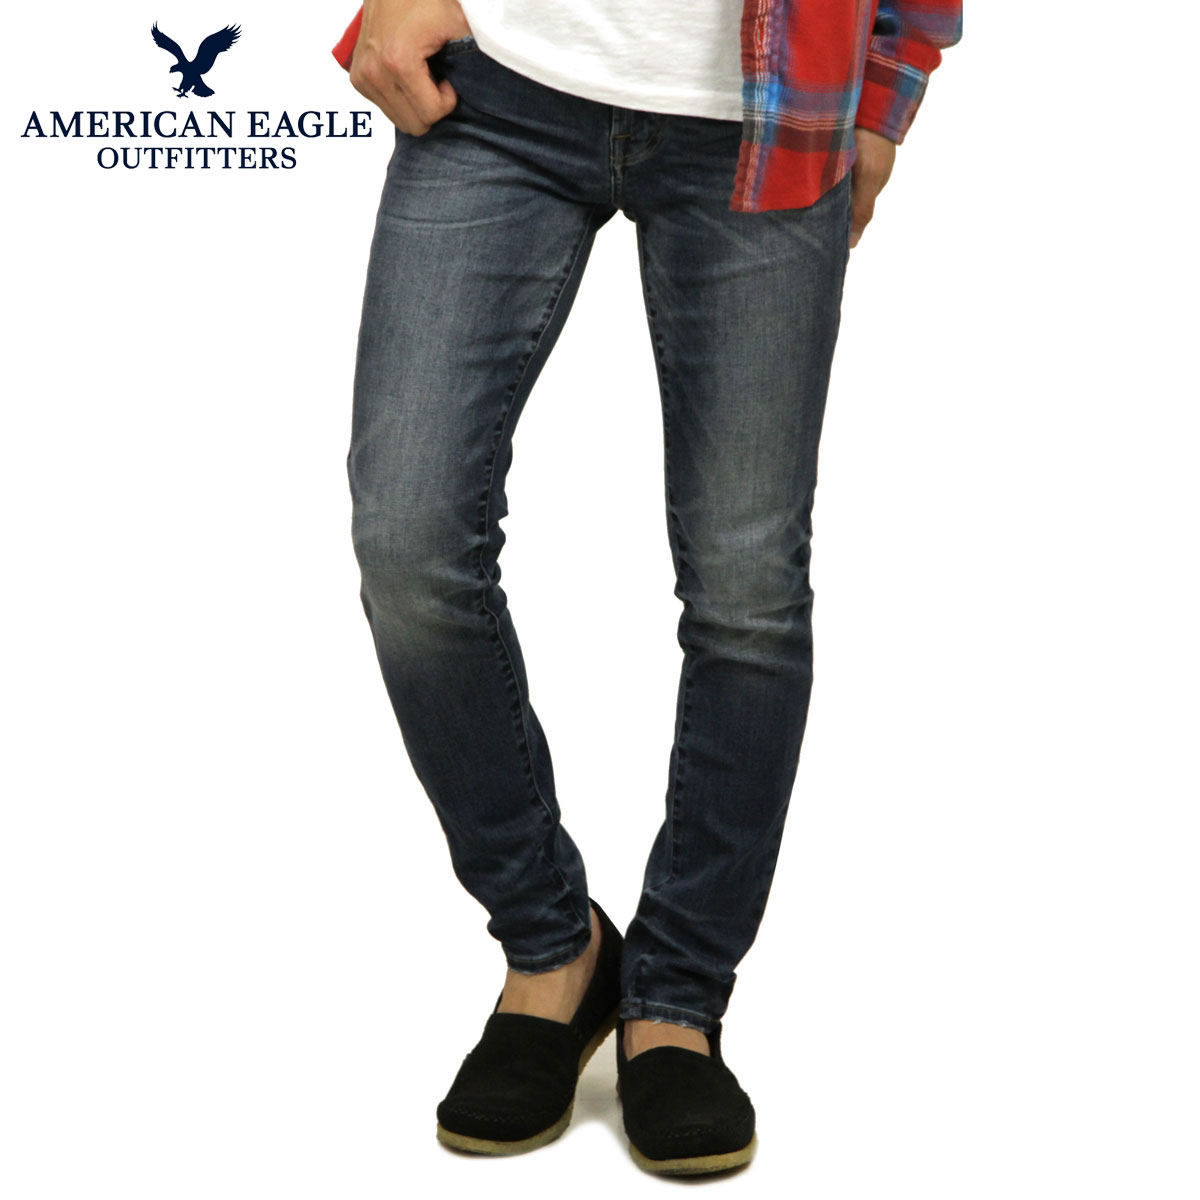 8e2e46d4 American eagle AMERICAN EAGLE regular article men jeans denim underwear AE  EXTREME FLEX SKINNY JEAN 0119 ...